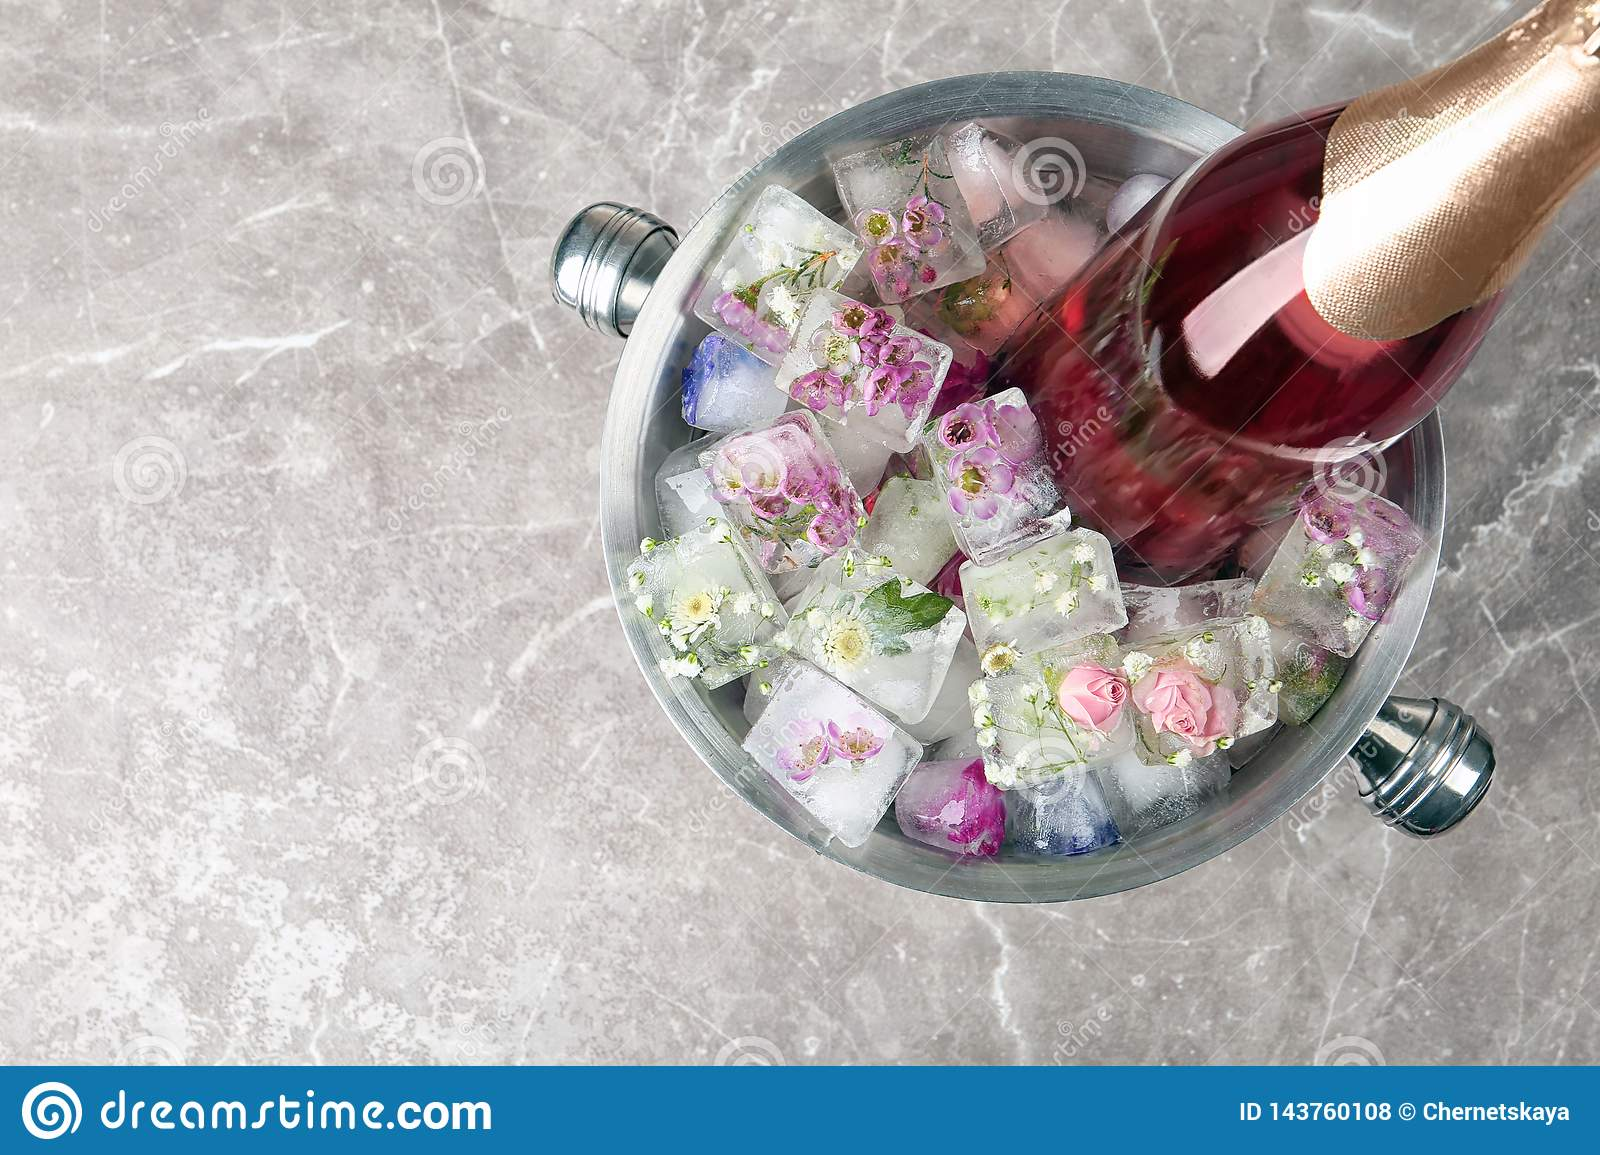 Bottle Of Champagne With Floral Ice Cubes In Bucket On Table Top View Stock Photo Image Of Clear Flowers 143760108